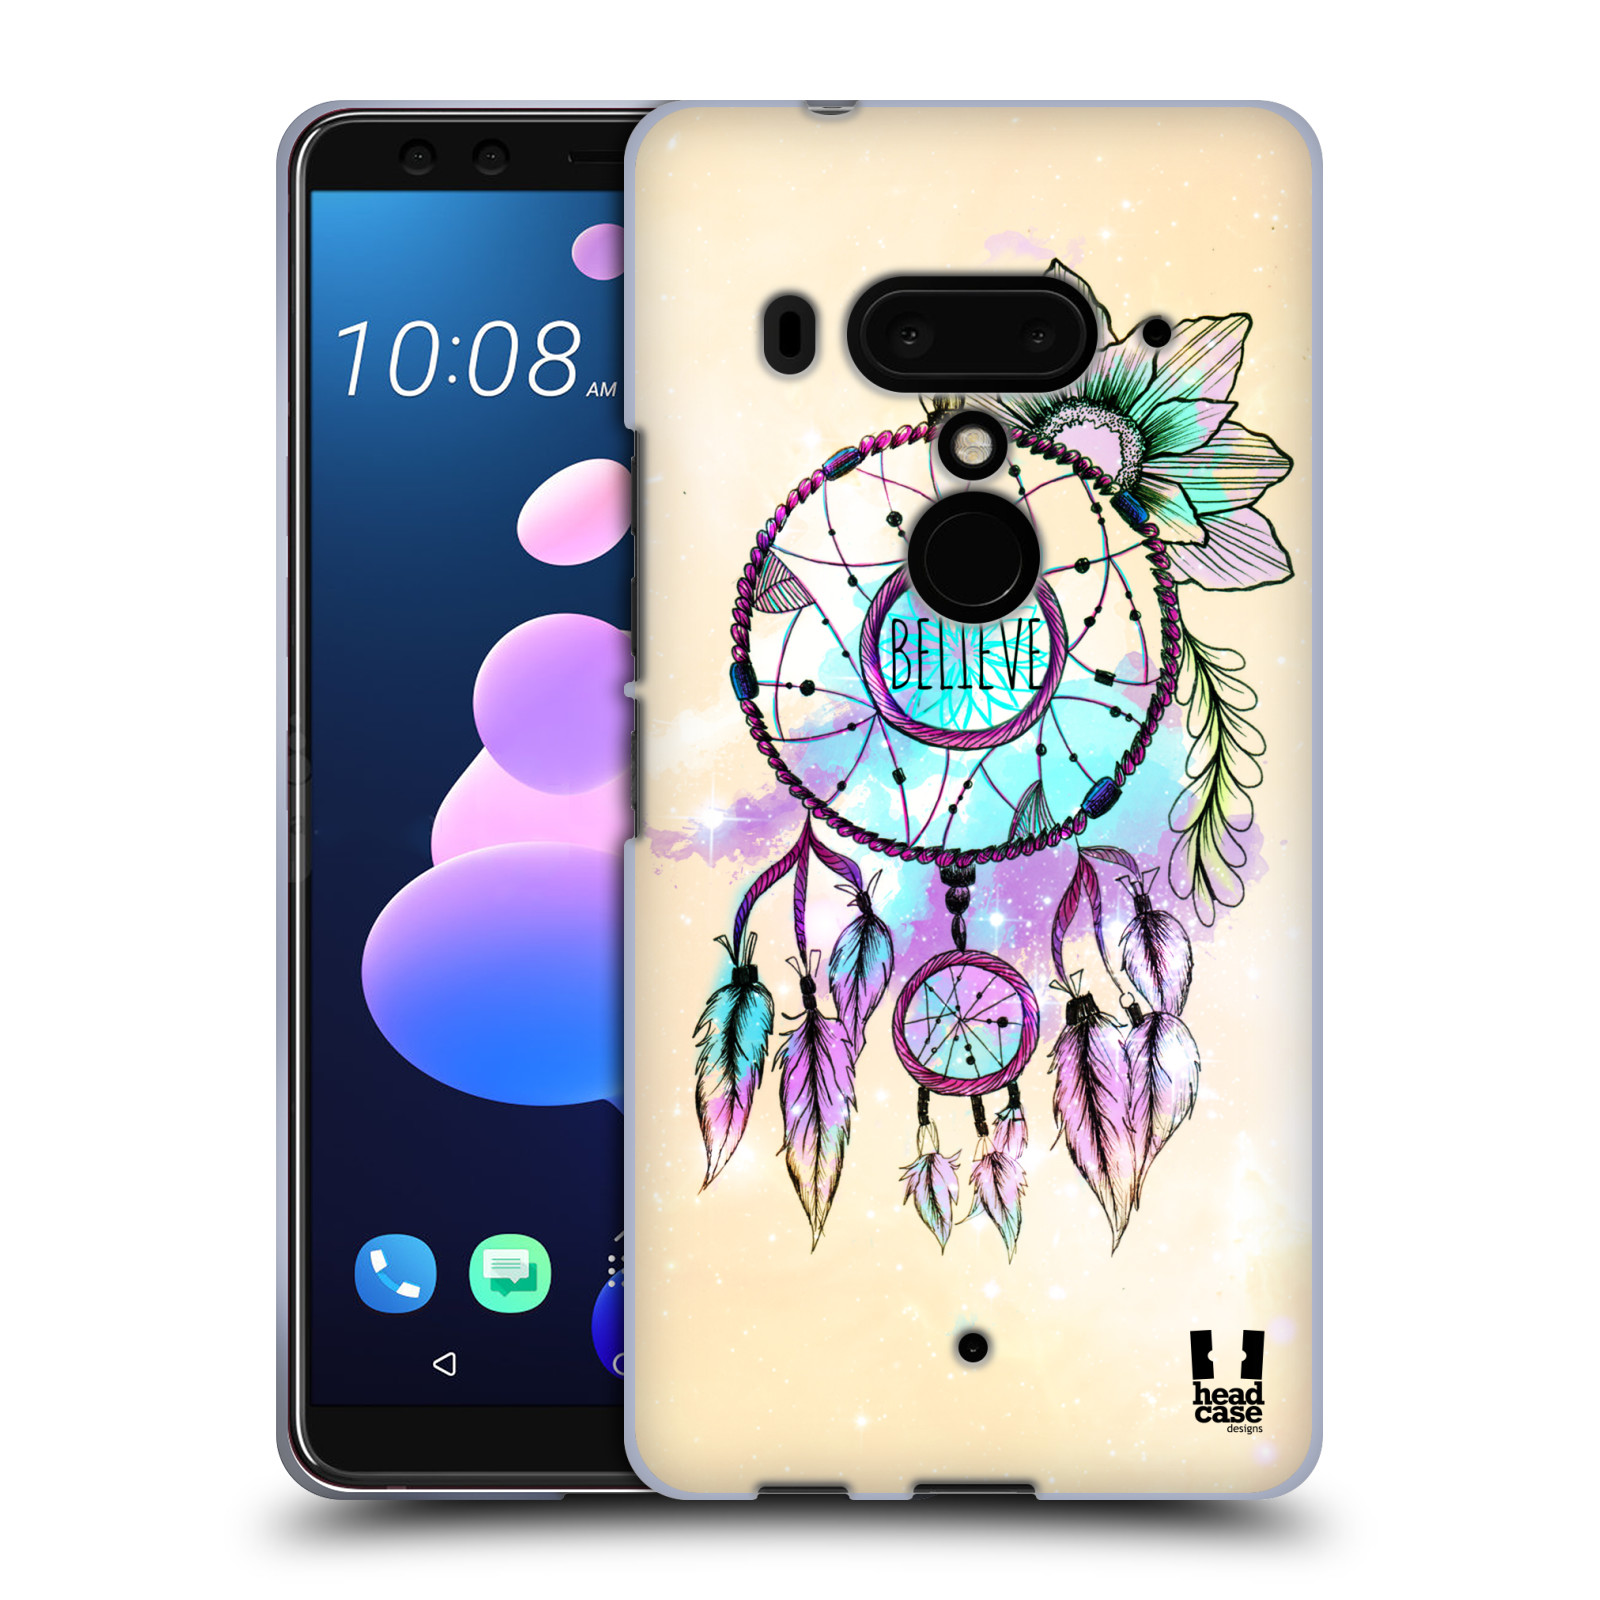 Silikonové pouzdro na mobil HTC U12 Plus - Head Case - MIX BELIEVE